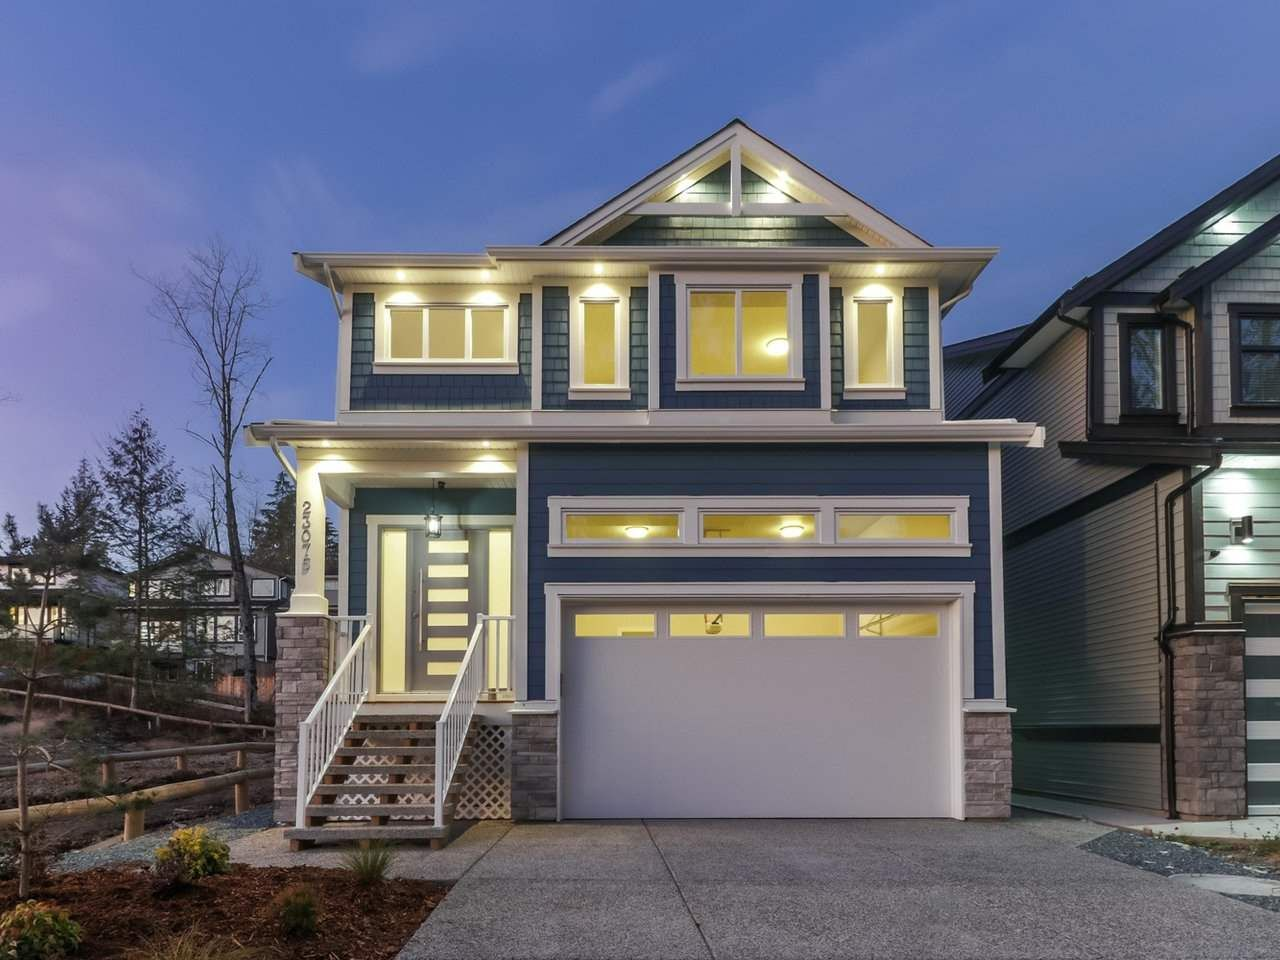 """Main Photo: 23075 134 Loop in Maple Ridge: Silver Valley House for sale in """"Silver Valley & Fern Crescent"""" : MLS®# R2461961"""